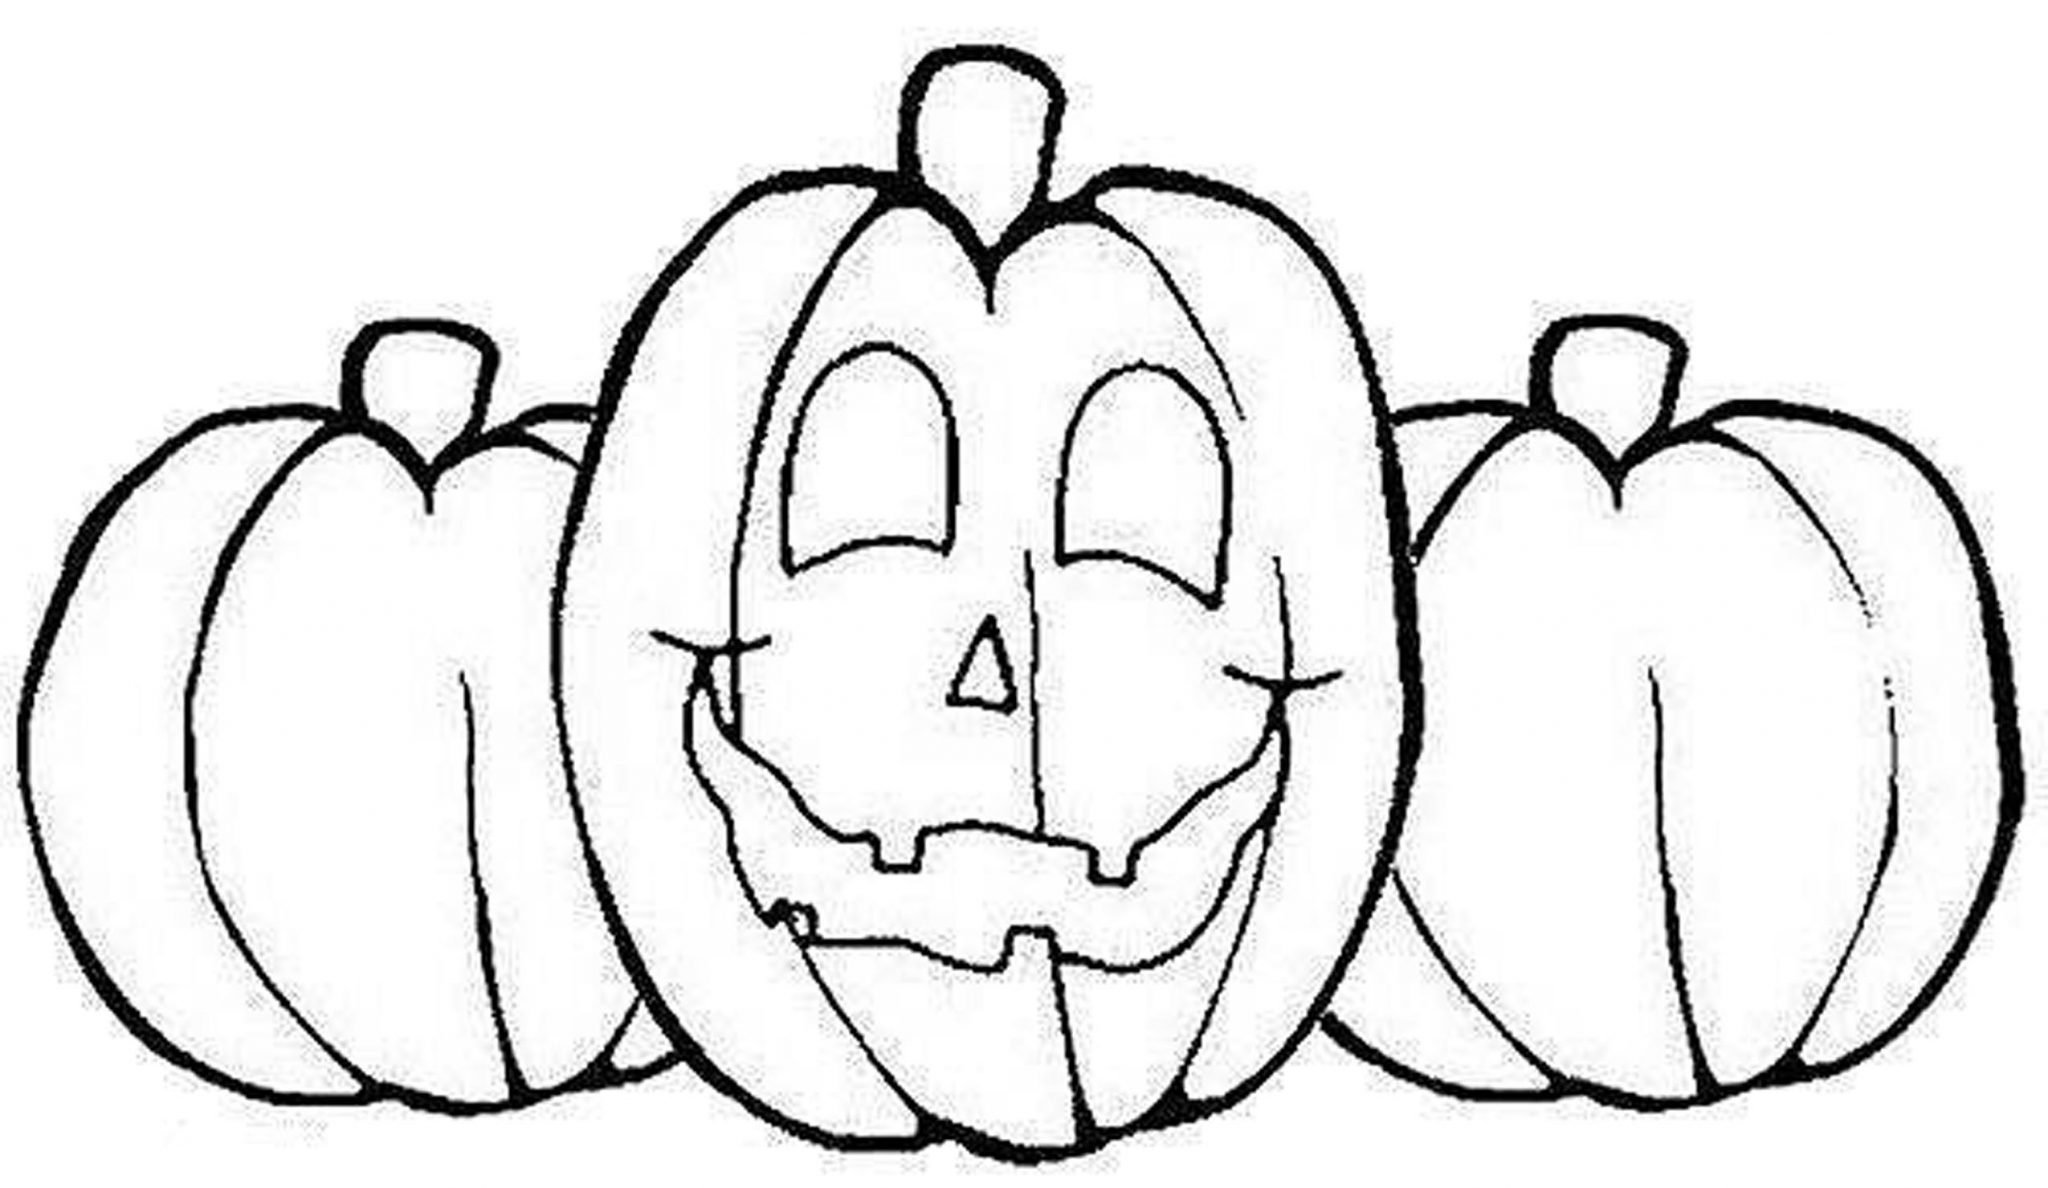 pumpkin-coloring-pages-printable- | | BestAppsForKids.com